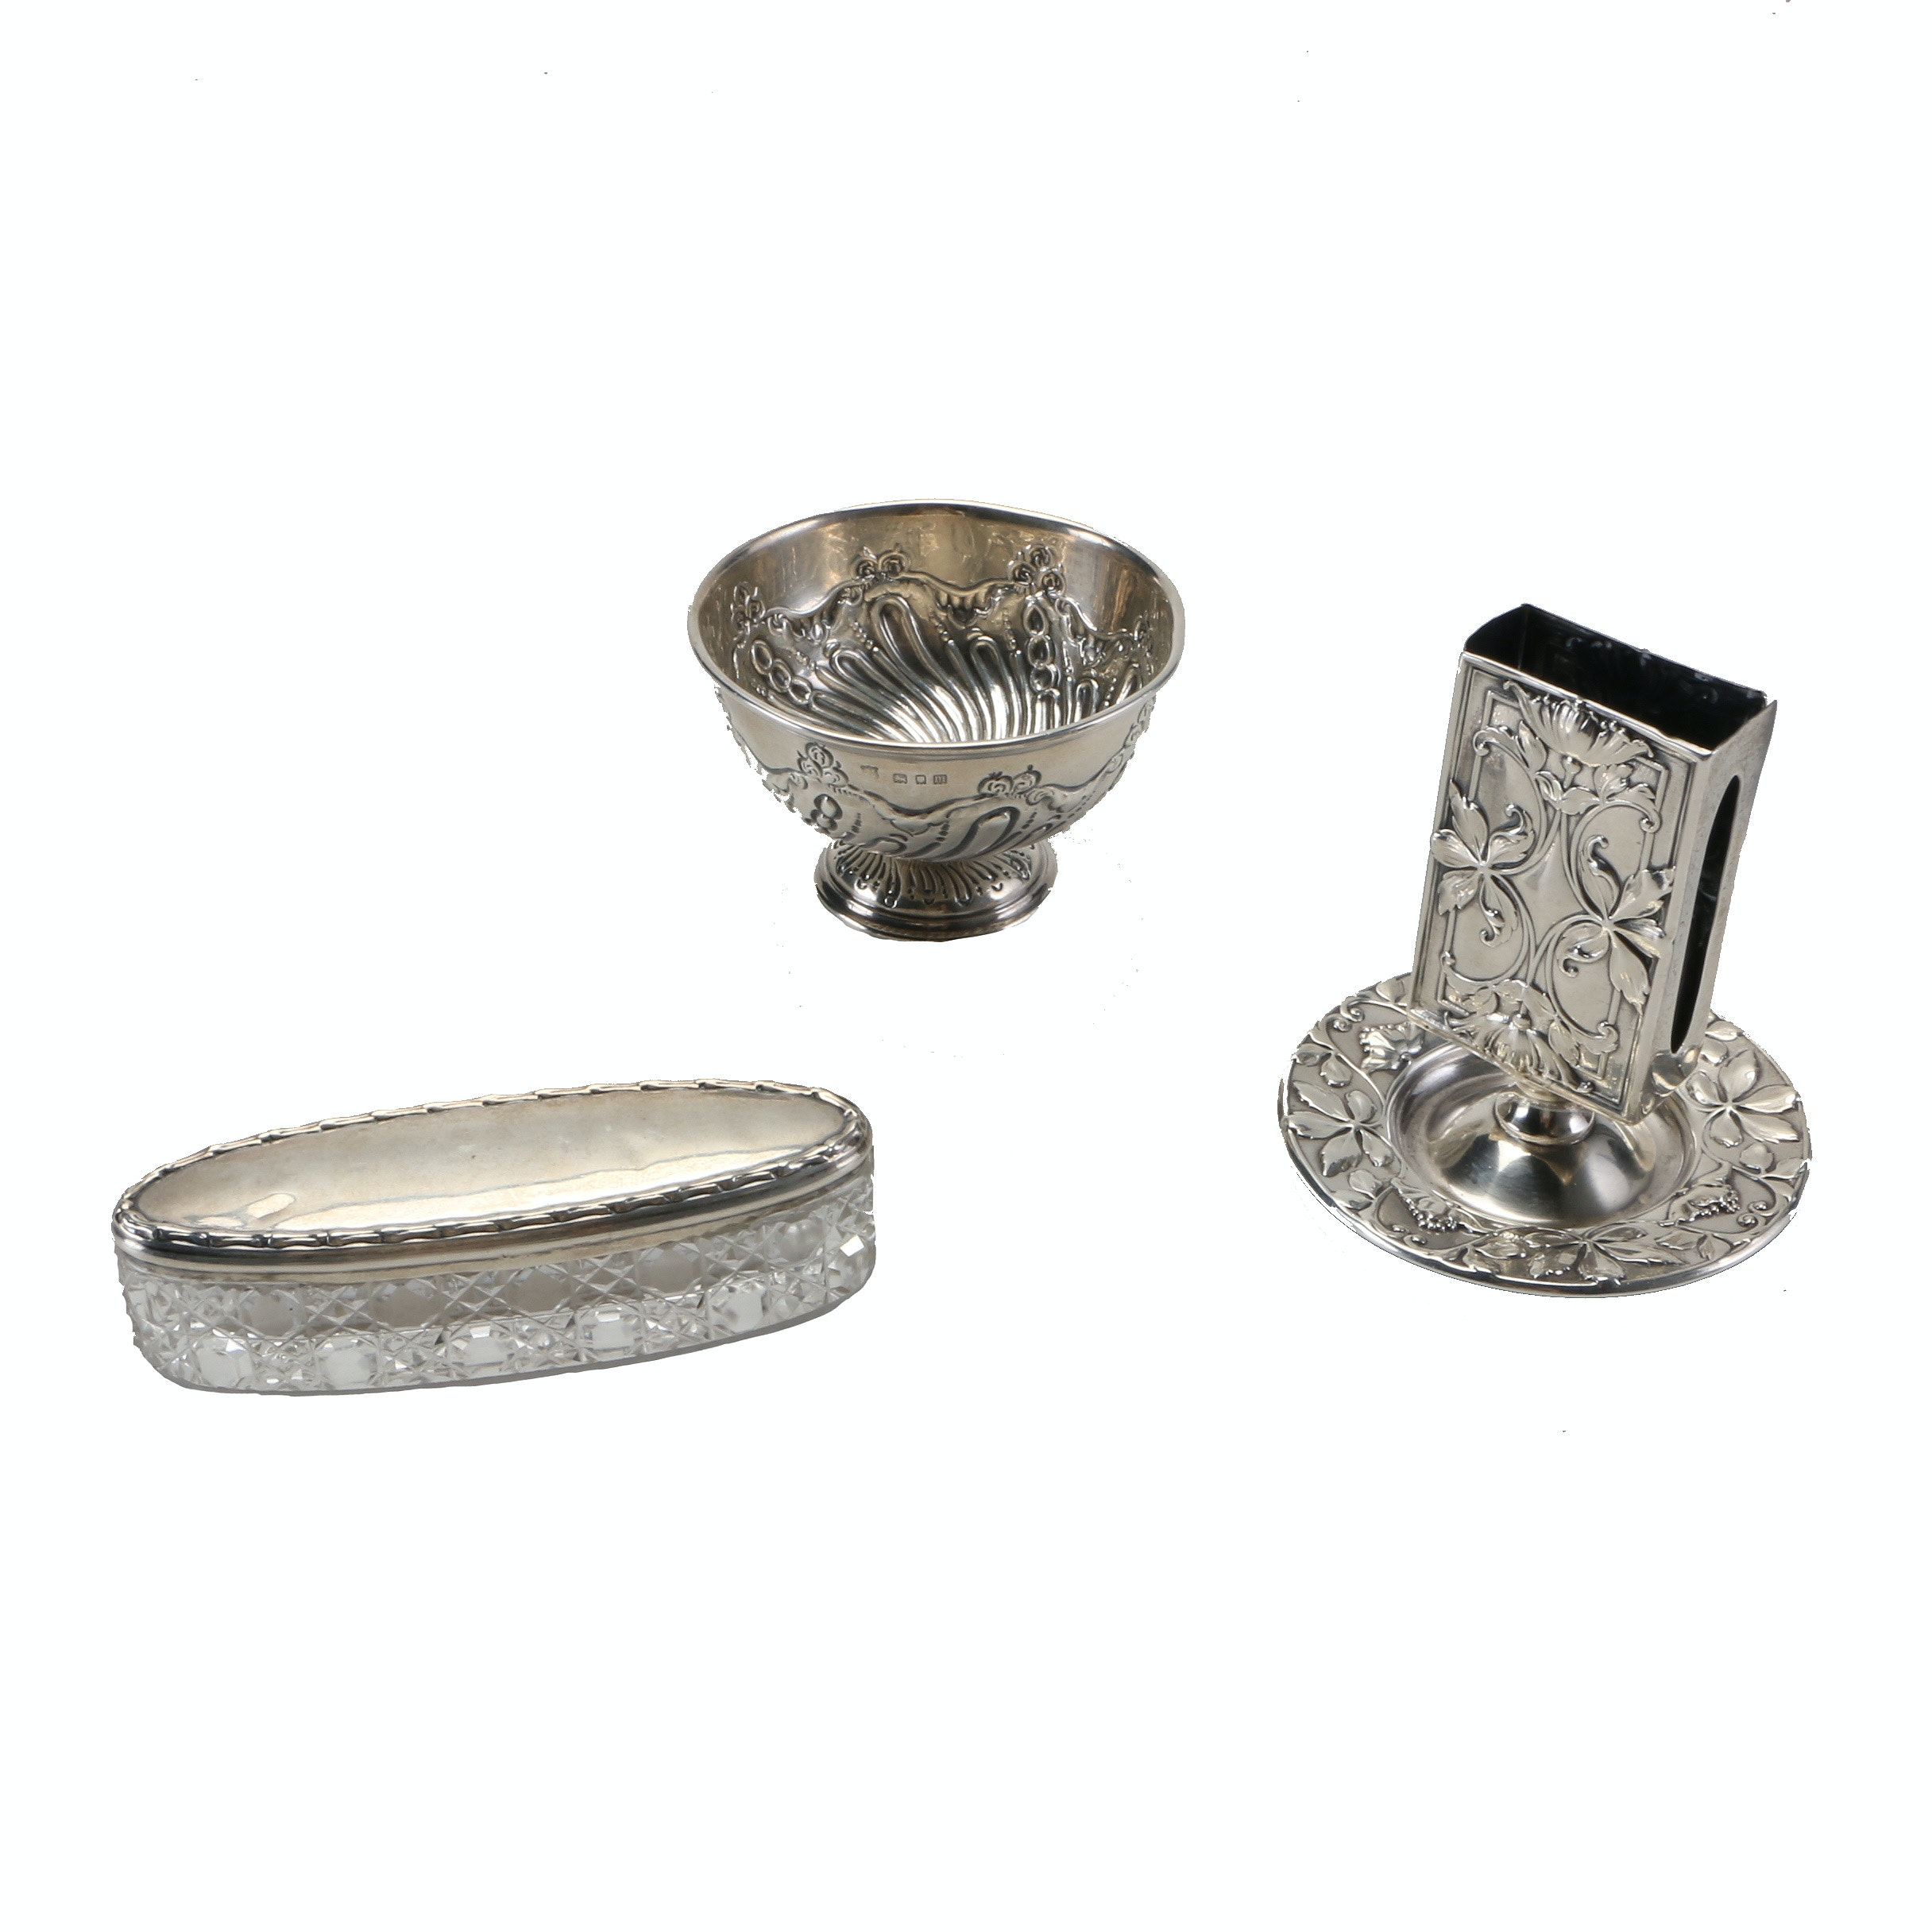 British Sterling Silver Finger Bowl, Gorham Sterling Matchbox Holder and Decorative Jar